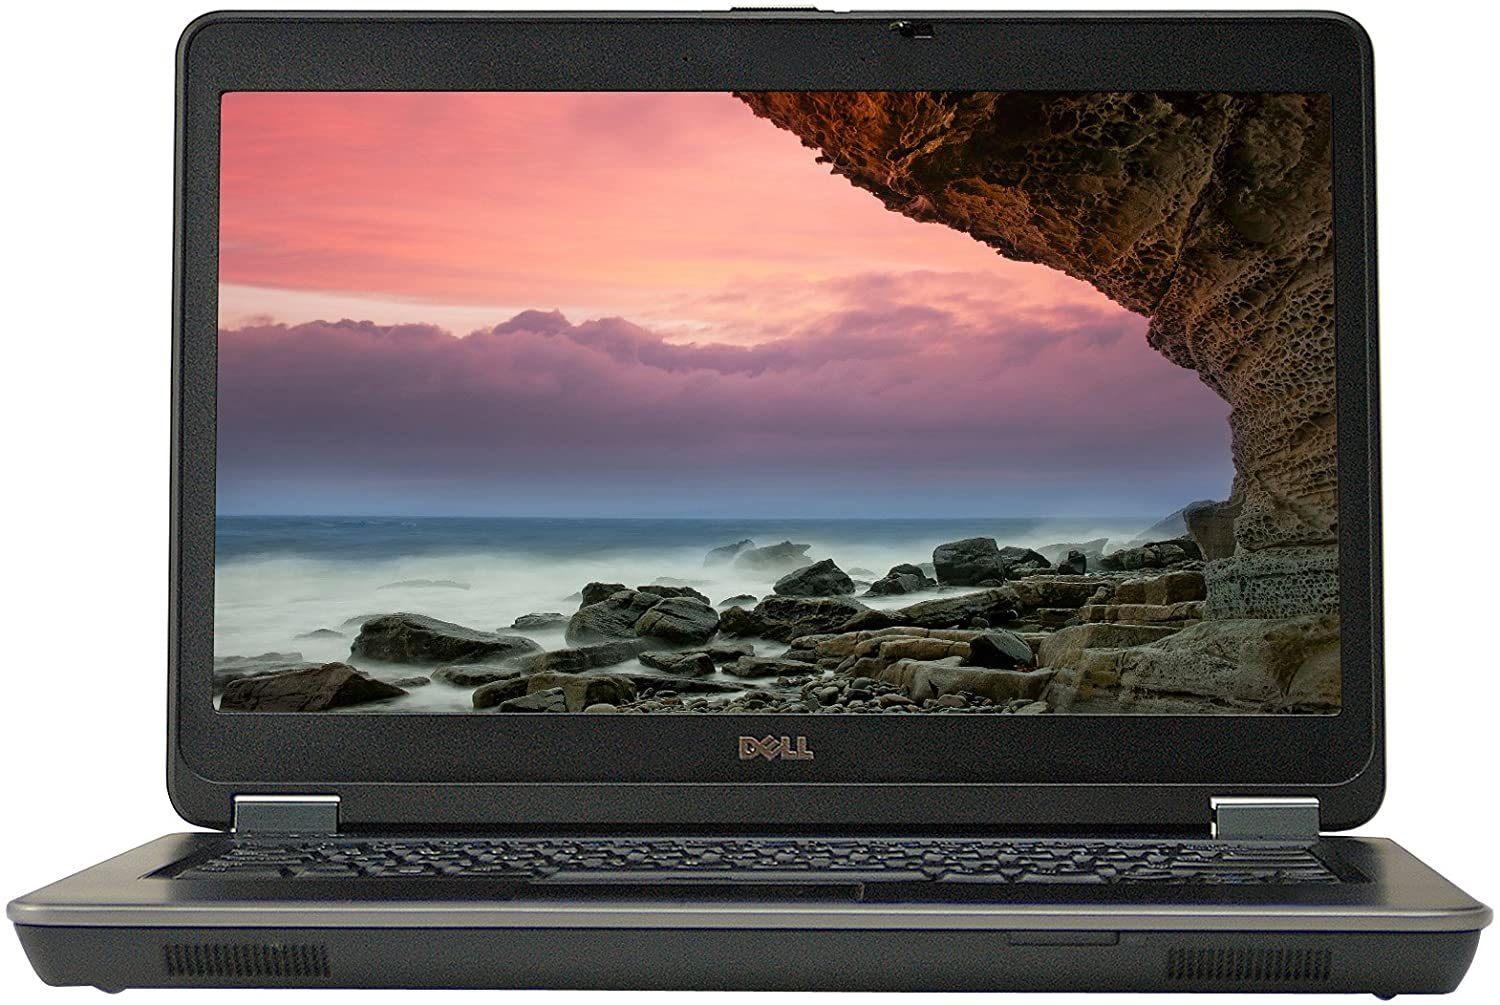 Dell Latitude E6440 14in Laptop, Core i5-4300M 2.6GHz, 8GB Ram, 256GB SSD, DVDRW, Windows 10 Pro 64bit (Renewed)